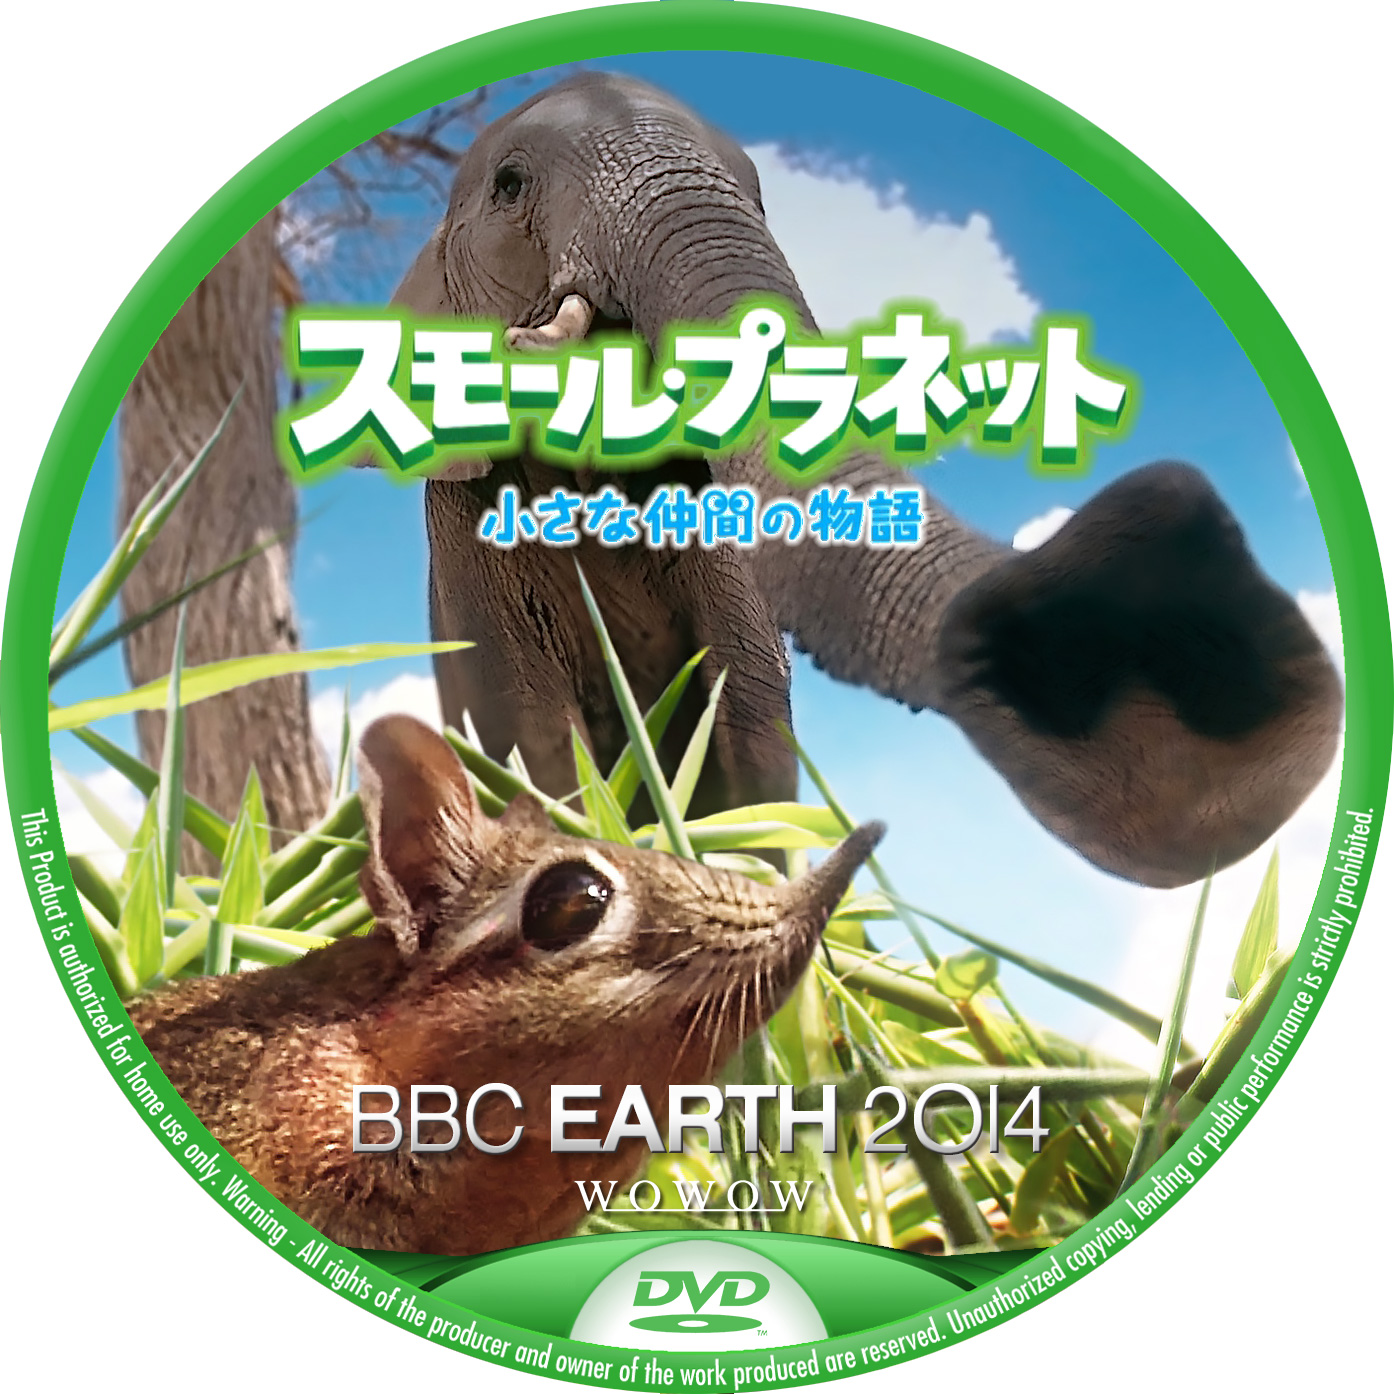 BBC_Small_Planet-DVD1